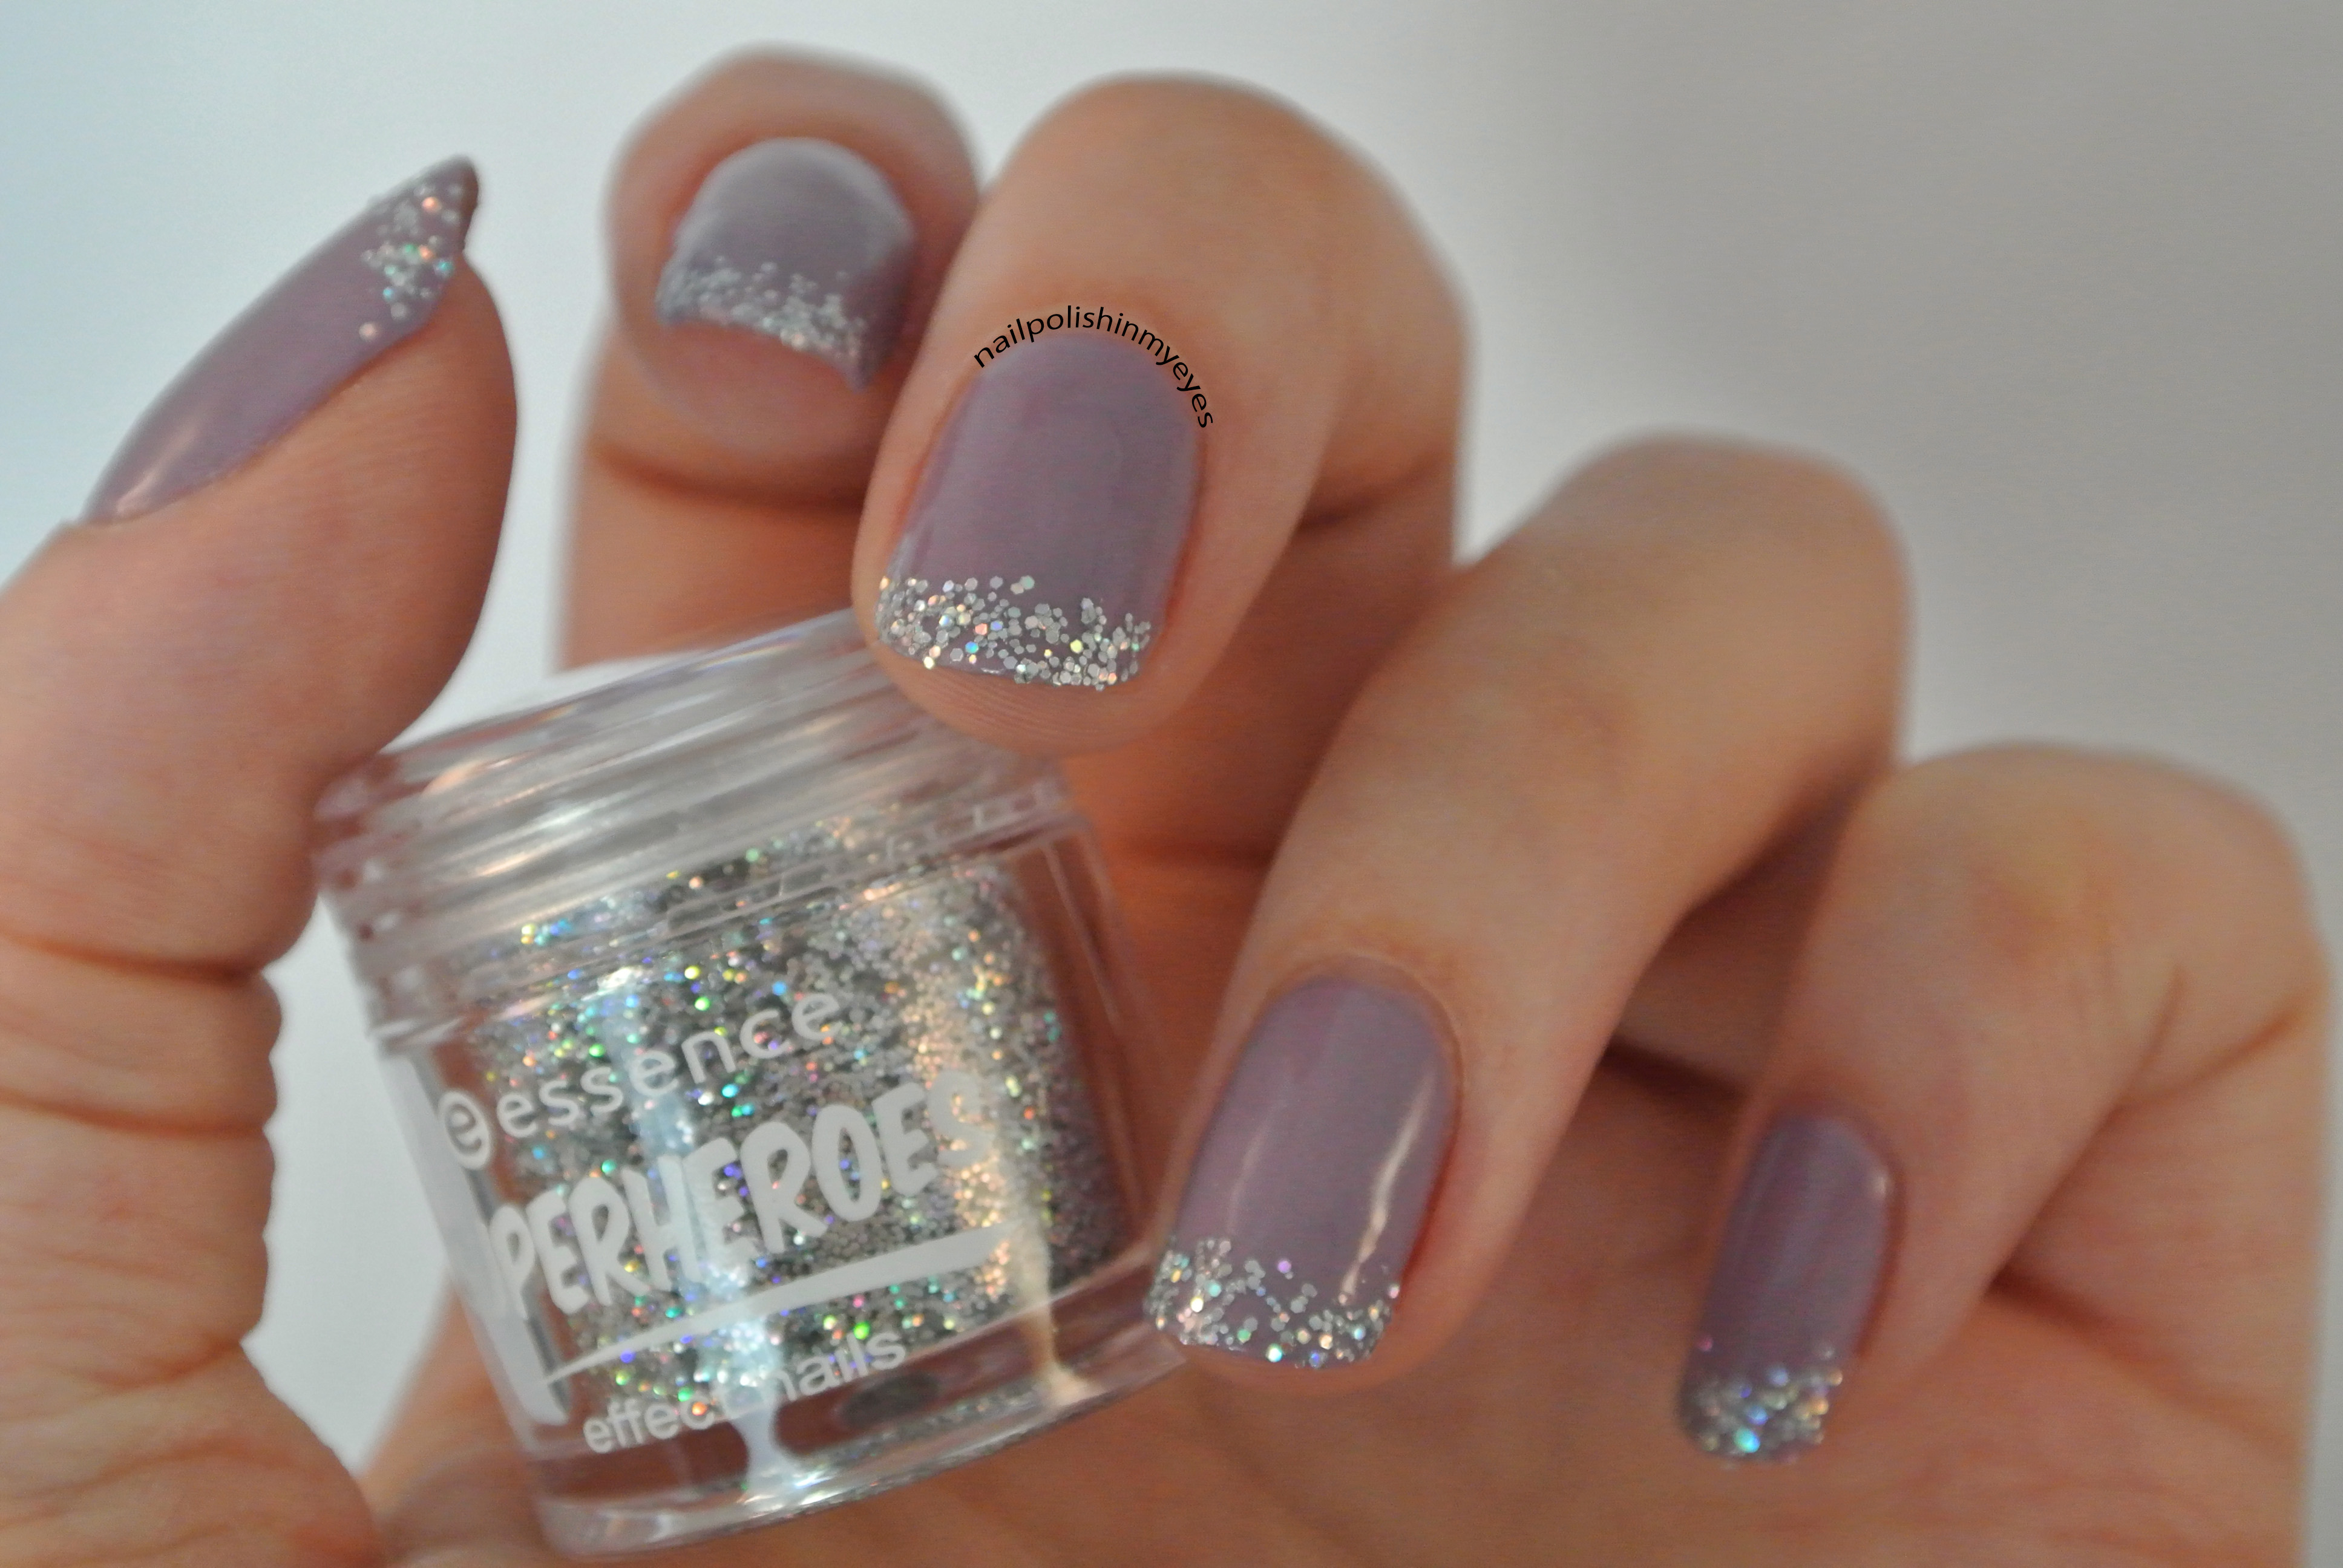 Purple & Glitter French Manicure | Nail Polish in my Eyes